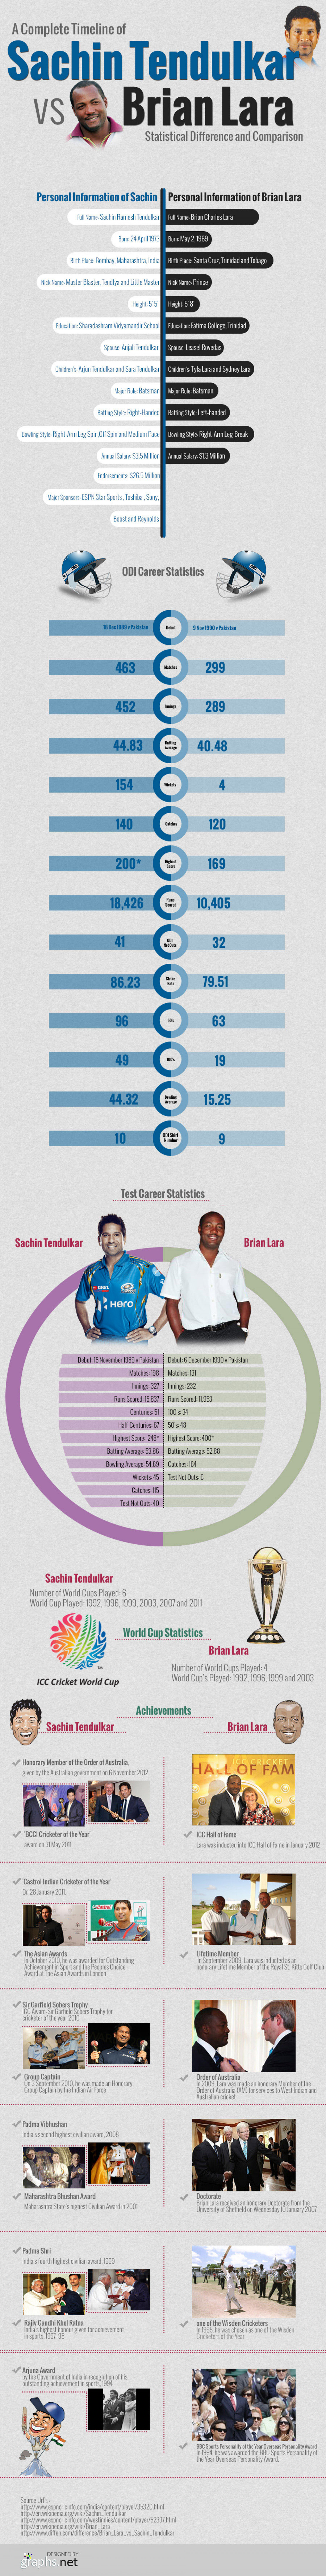 Sachin Tendulkar and Brian Lara Infographic